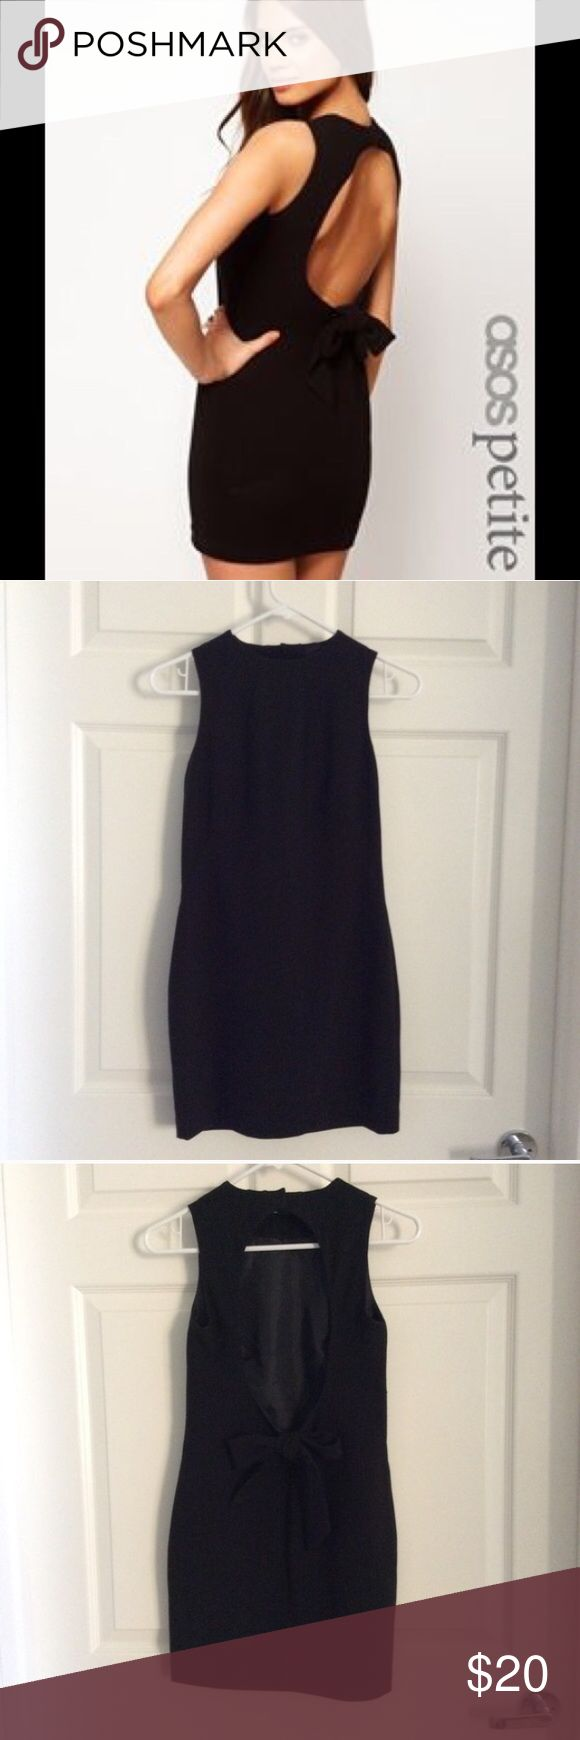 ASOS petite mini dress with bow back Never worn. Selling because it doesn't fit me. NWOT. Black with lining. UK 6/EU 34/US 2. ASOS Petite Dresses Mini